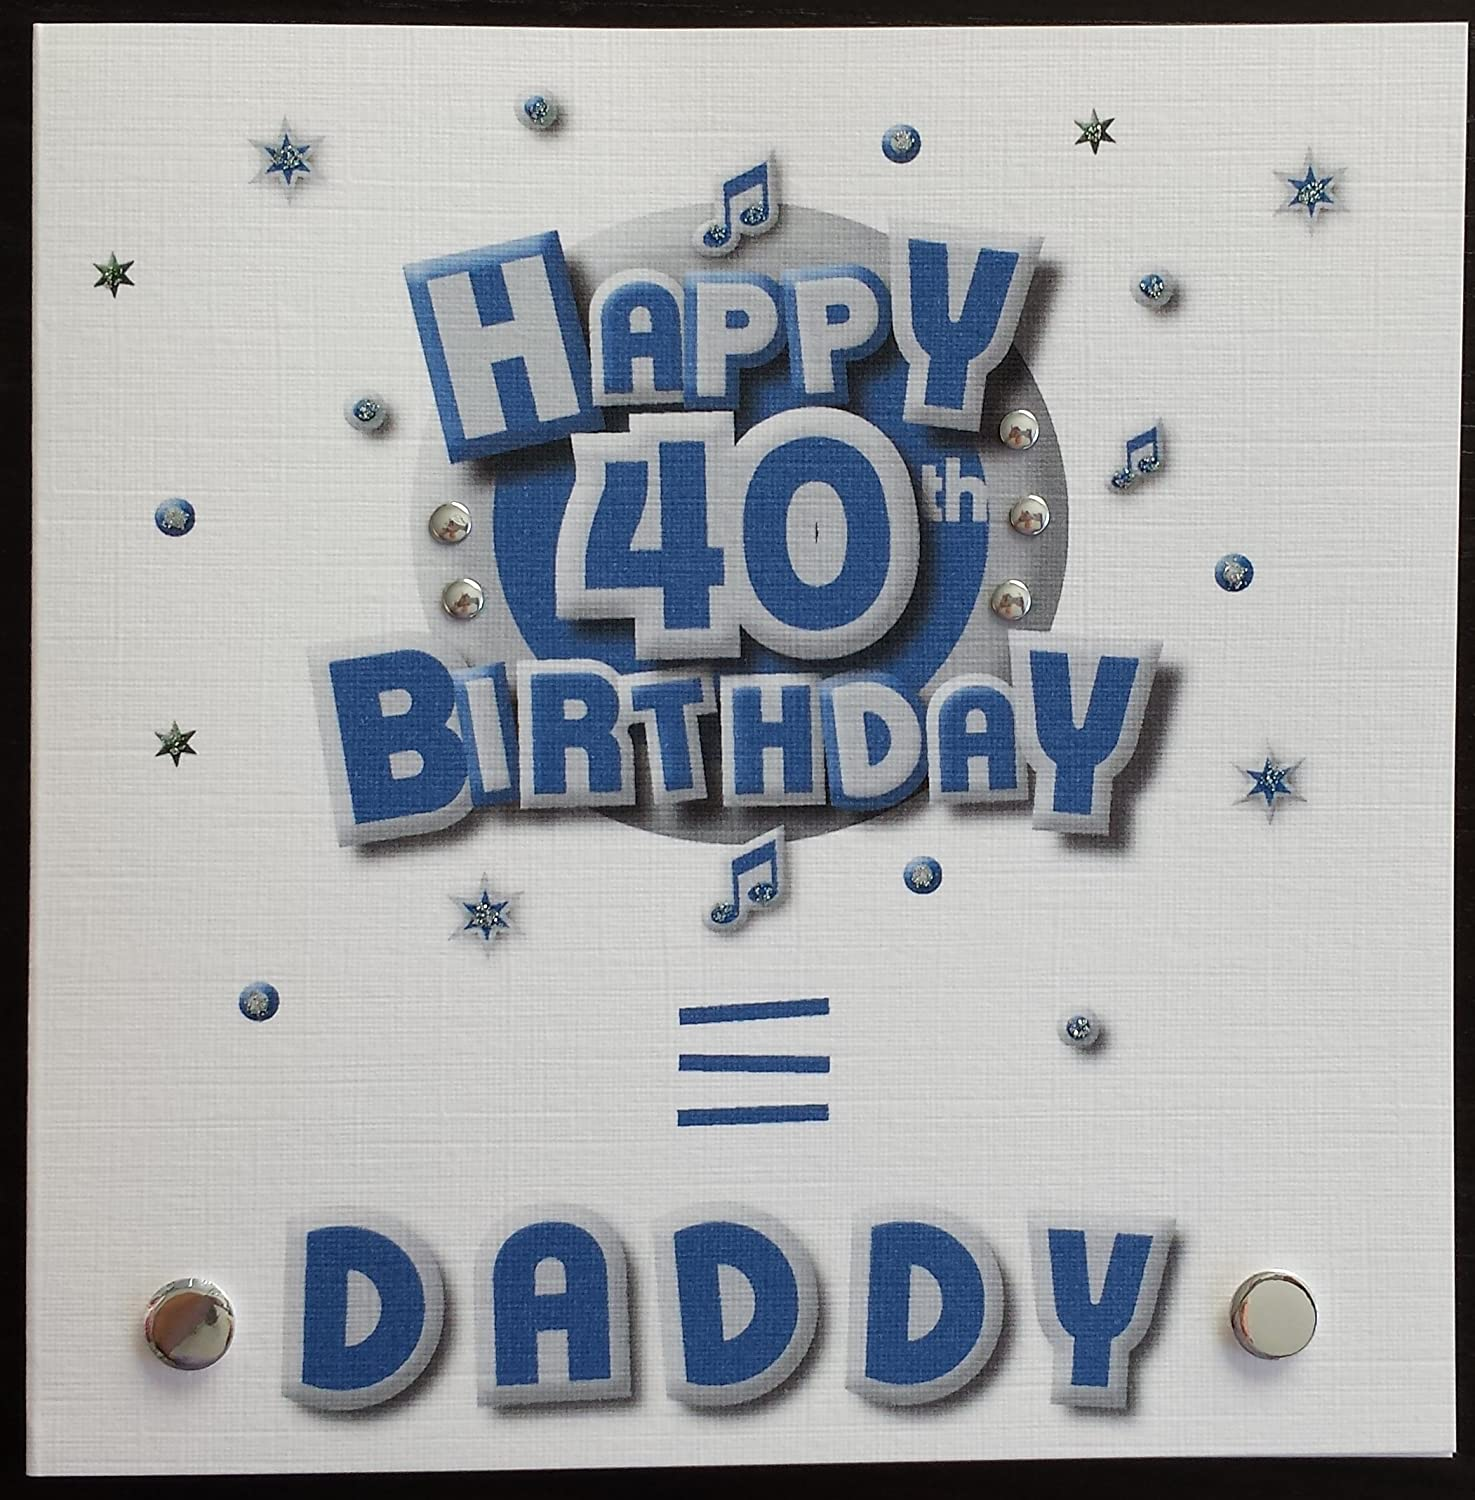 Happy birthday card daddy 40th birthday handmade card amazon happy birthday card daddy 40th birthday handmade card amazon kitchen home bookmarktalkfo Image collections